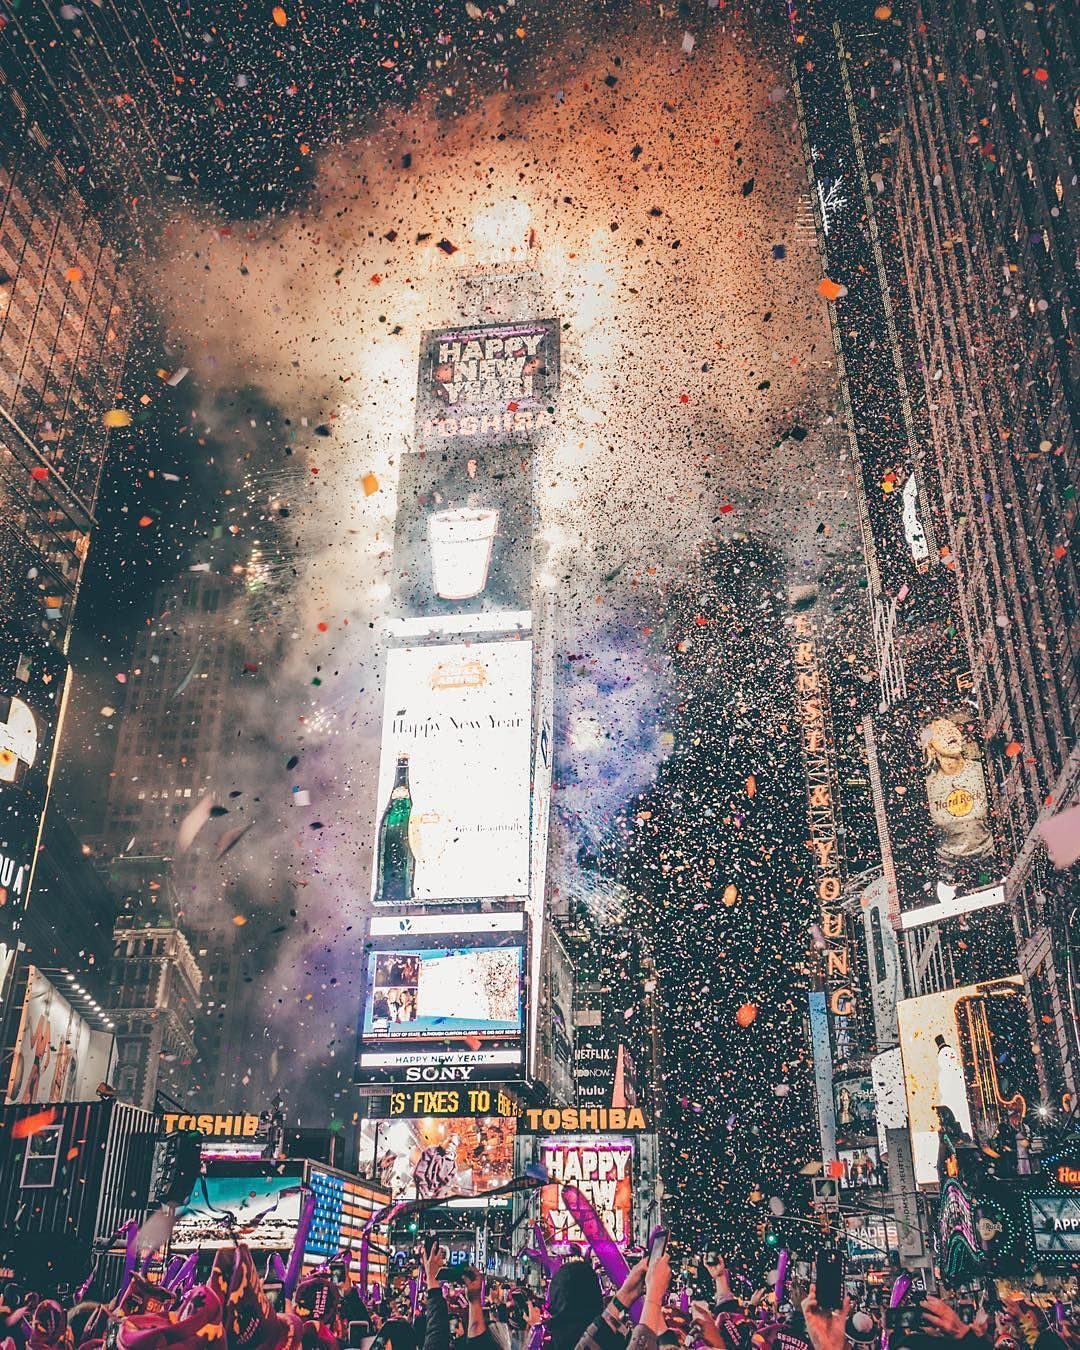 Happynewyear Photo By Deeo By Newyork Instagram New Year S Eve Wallpaper New York New Years Eve New Year Wallpaper